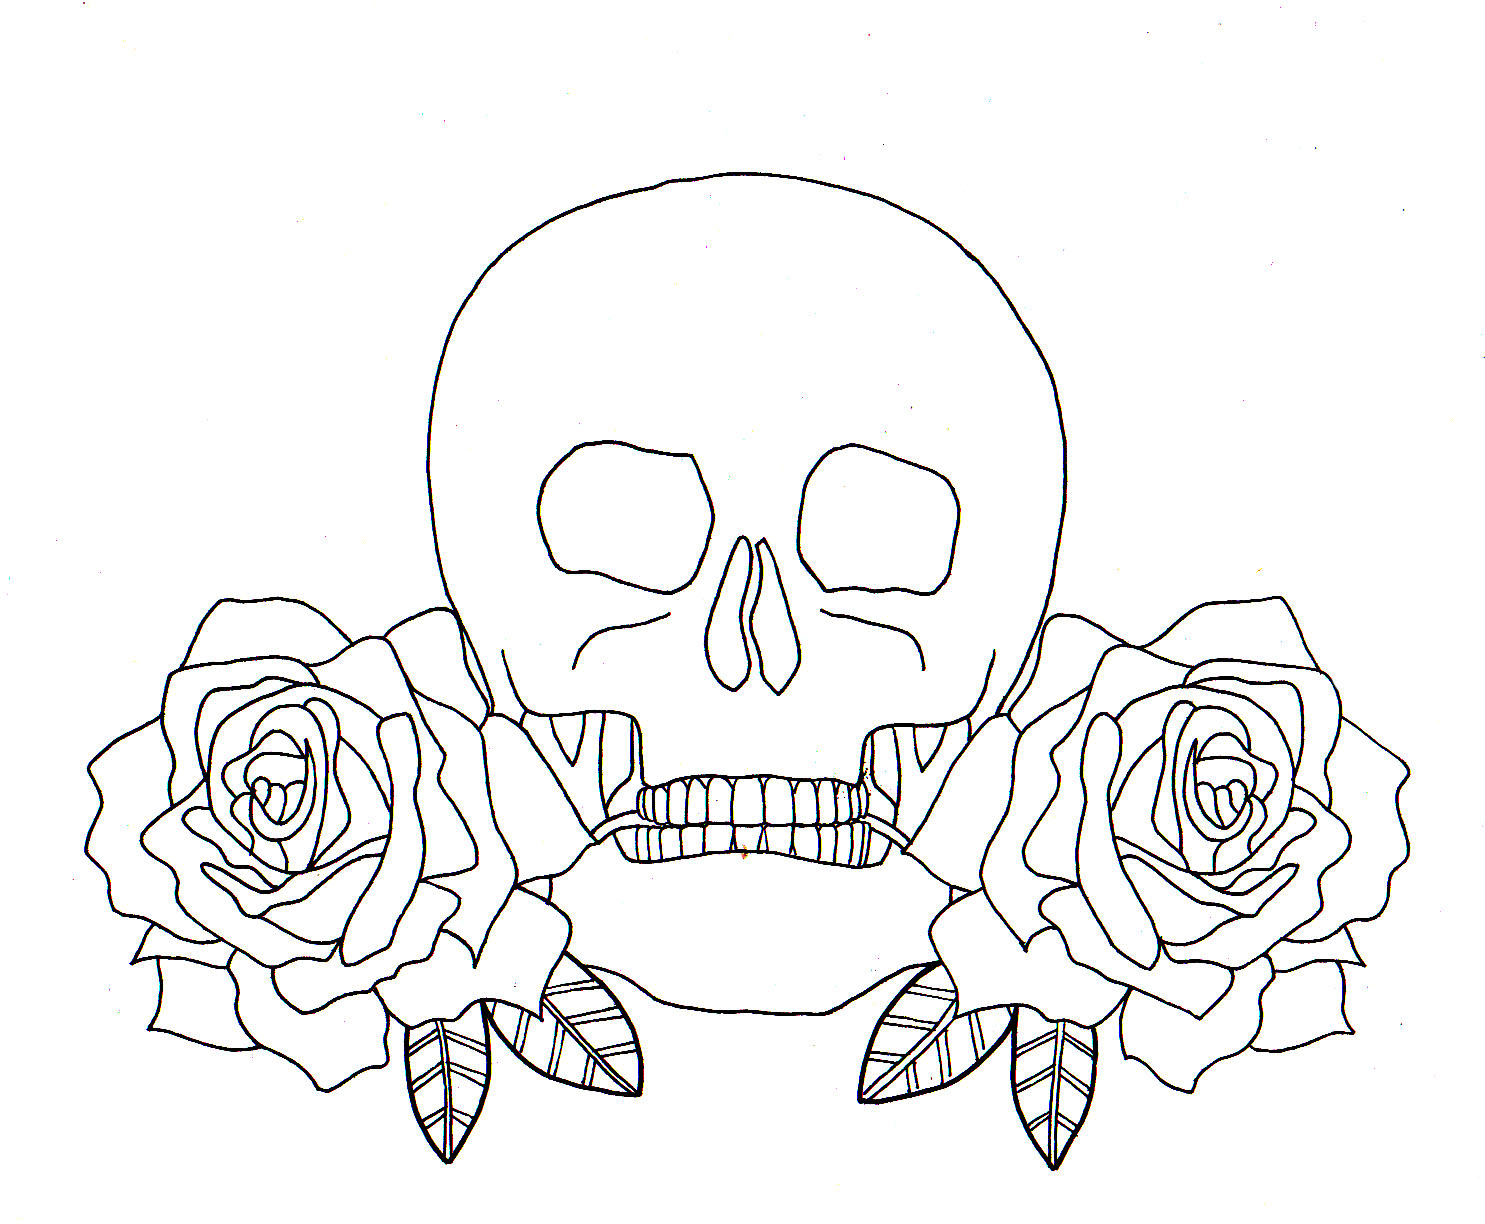 Line Drawing Skull : Skull and roses line drawing paper wings illustration